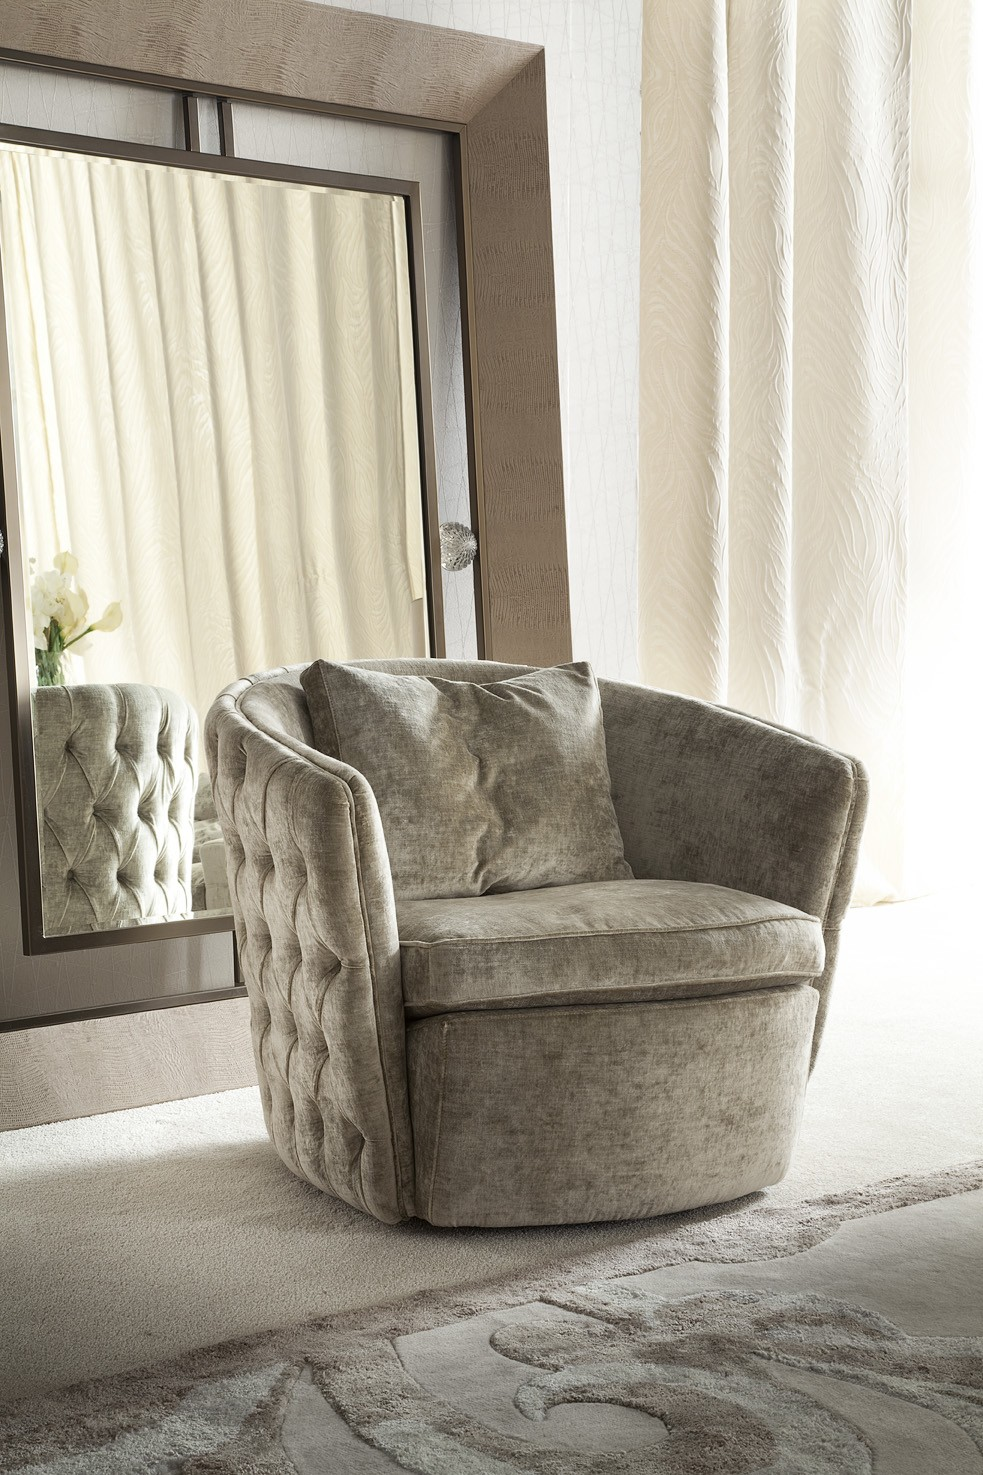 Modern Living Room Chair | Swivel Arm Chair | Los Angeles | Studio City